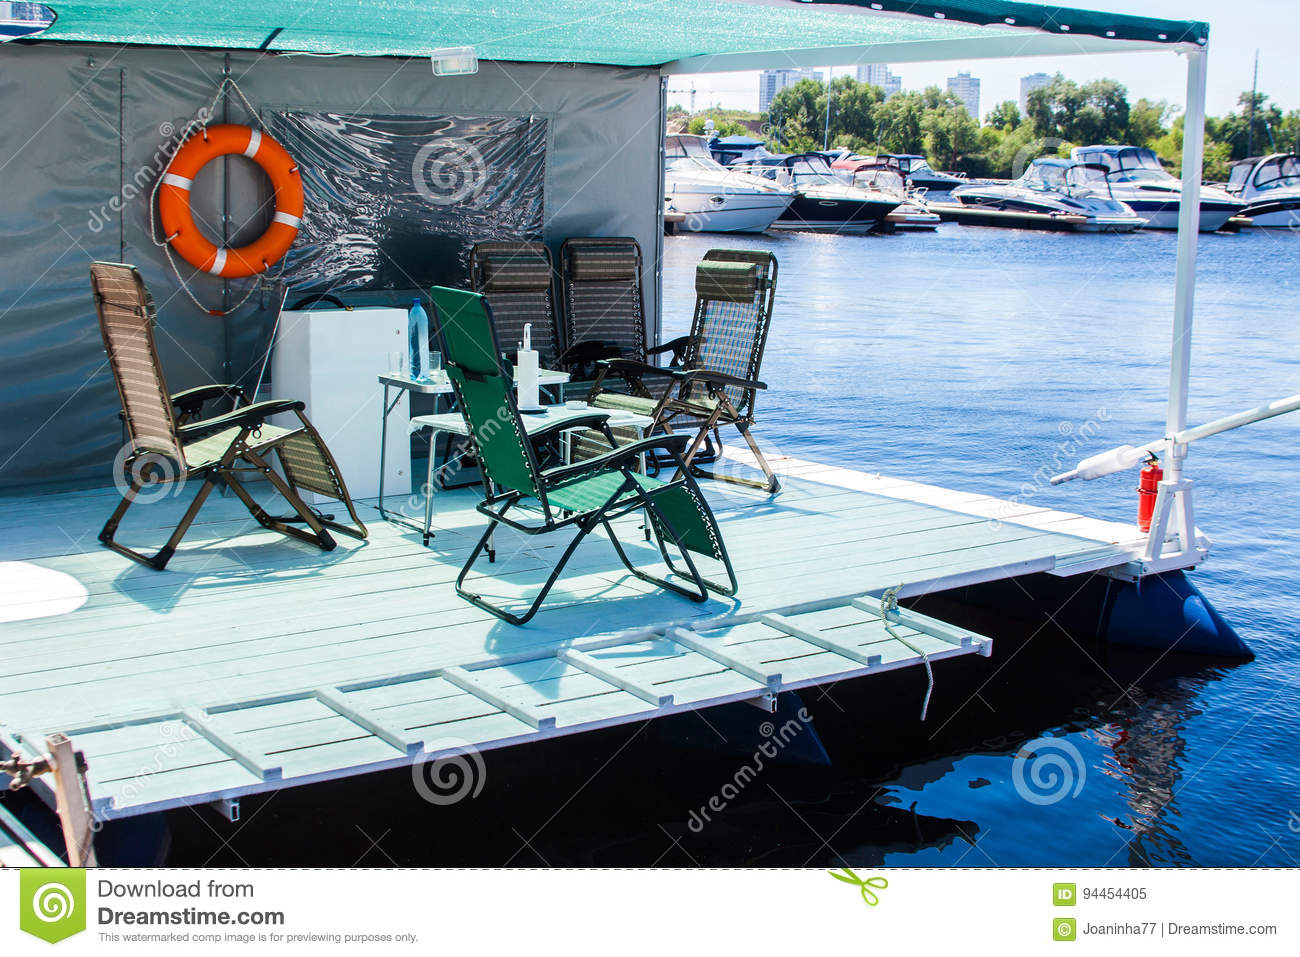 Tremendous Vacation And Slow Lifestyle Float House Good For Vacation Caraccident5 Cool Chair Designs And Ideas Caraccident5Info